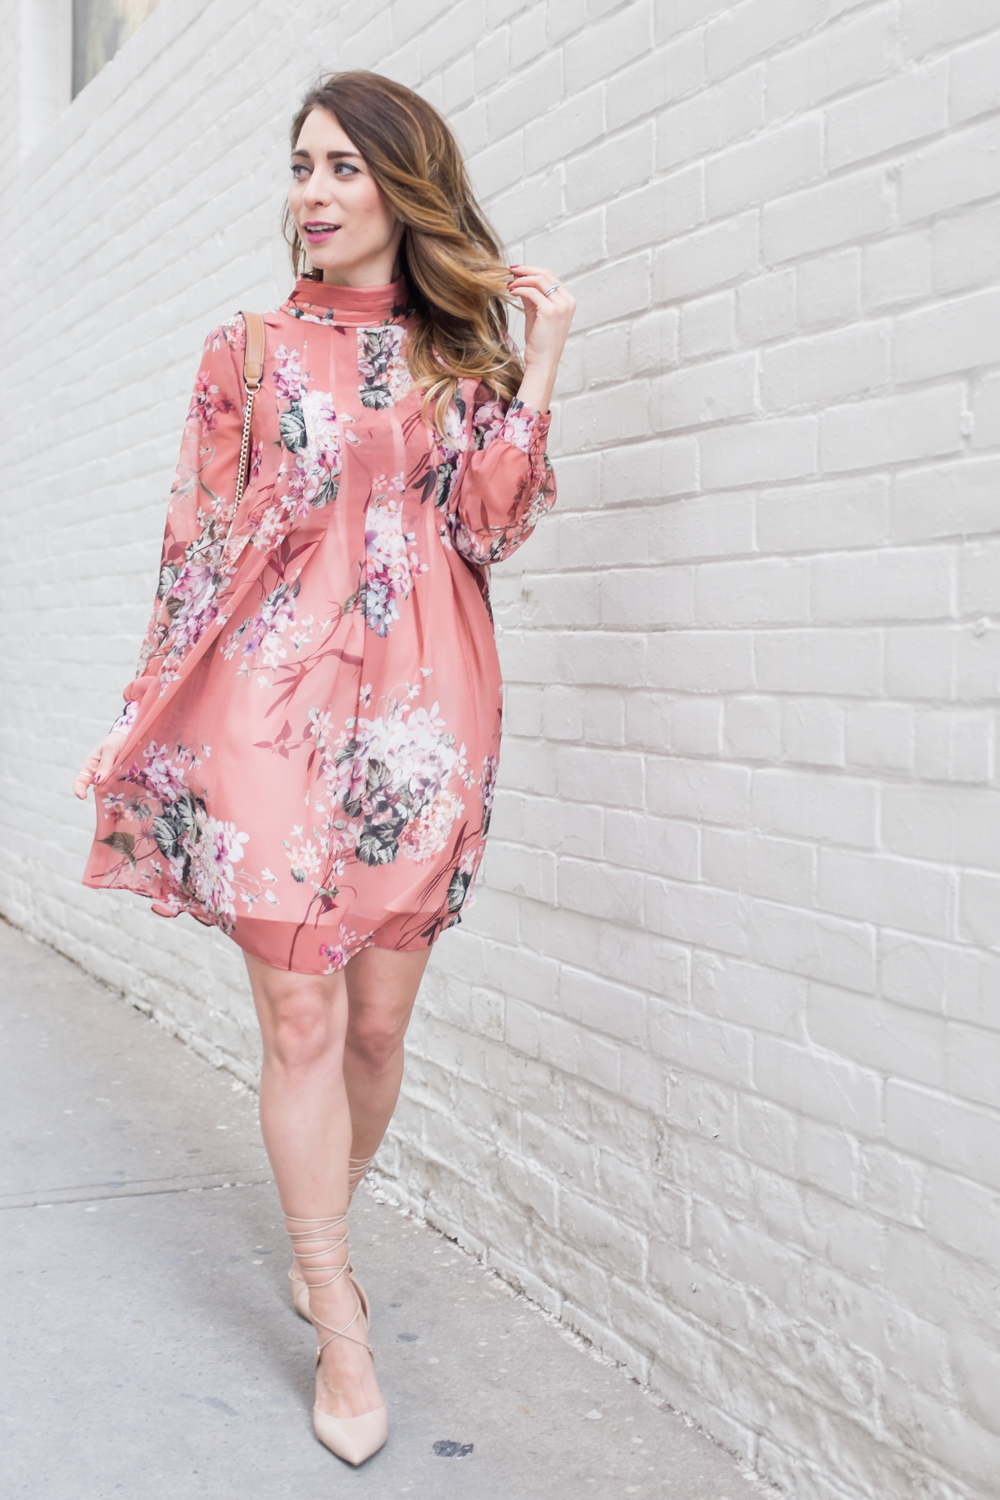 a9a214c0b9 OOTD - Peachy Florals Winter to Spring